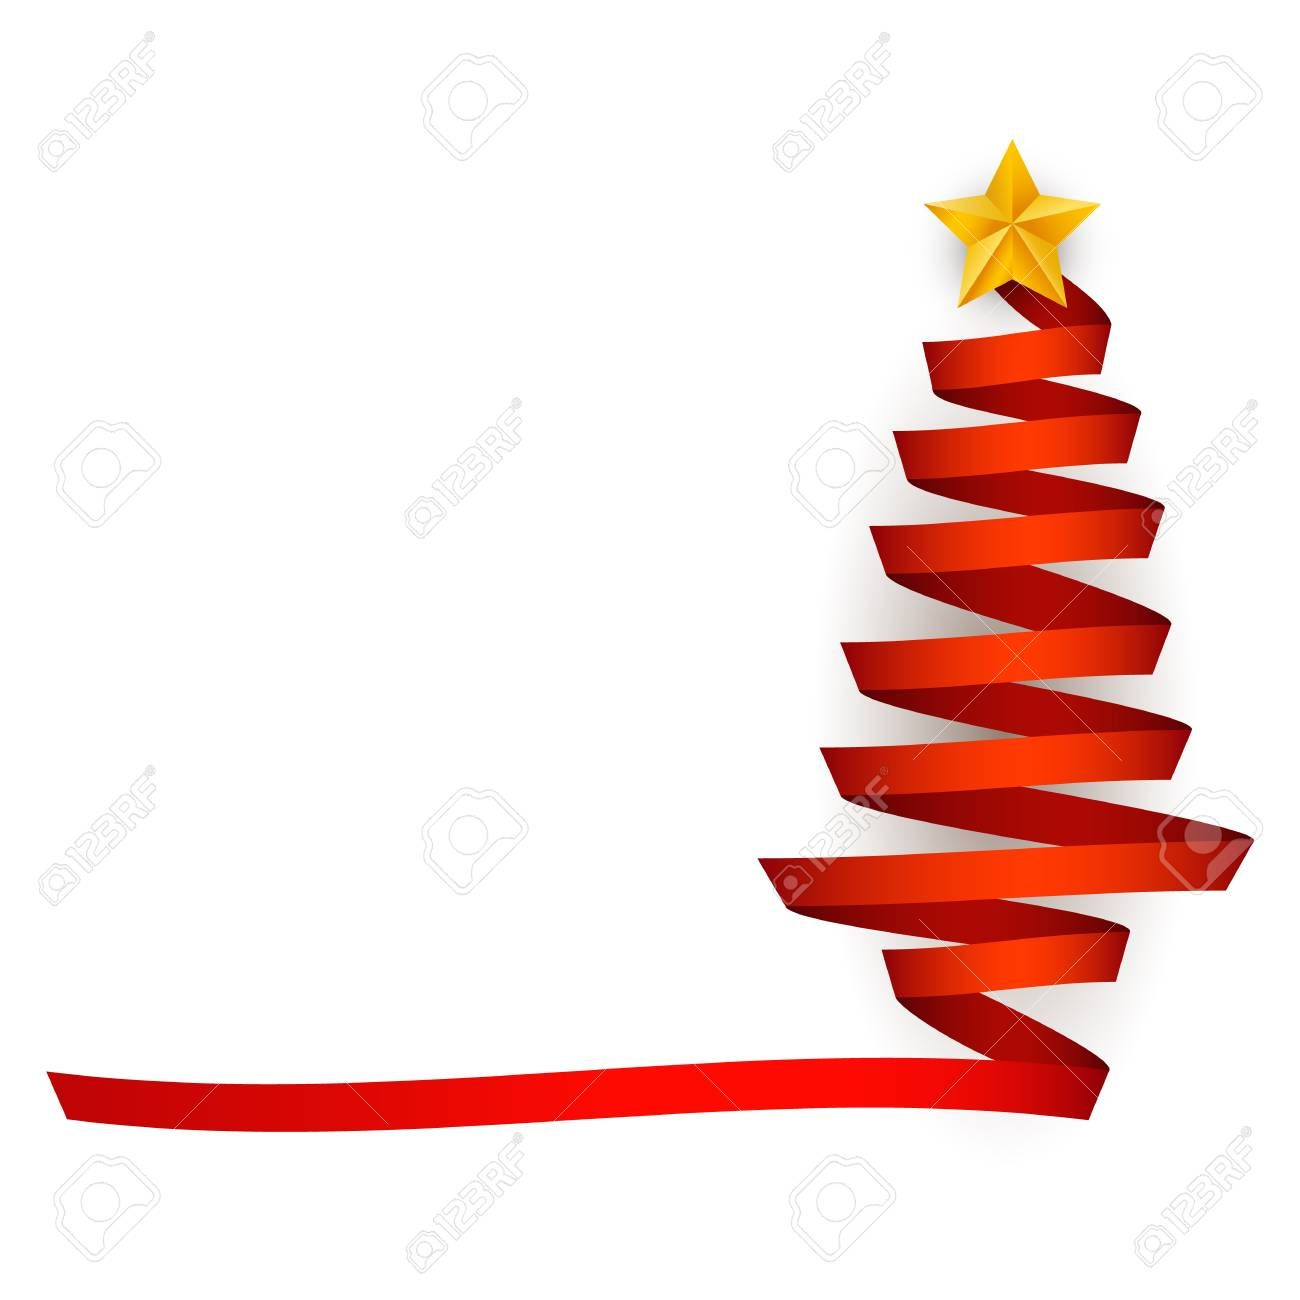 Vector Flat Red Ribbon Christmas Tree With Golden Star At Top Traditional Winter Holiday In 2020 Merry Christmas And Happy New Year New Years Decorations Golden Star